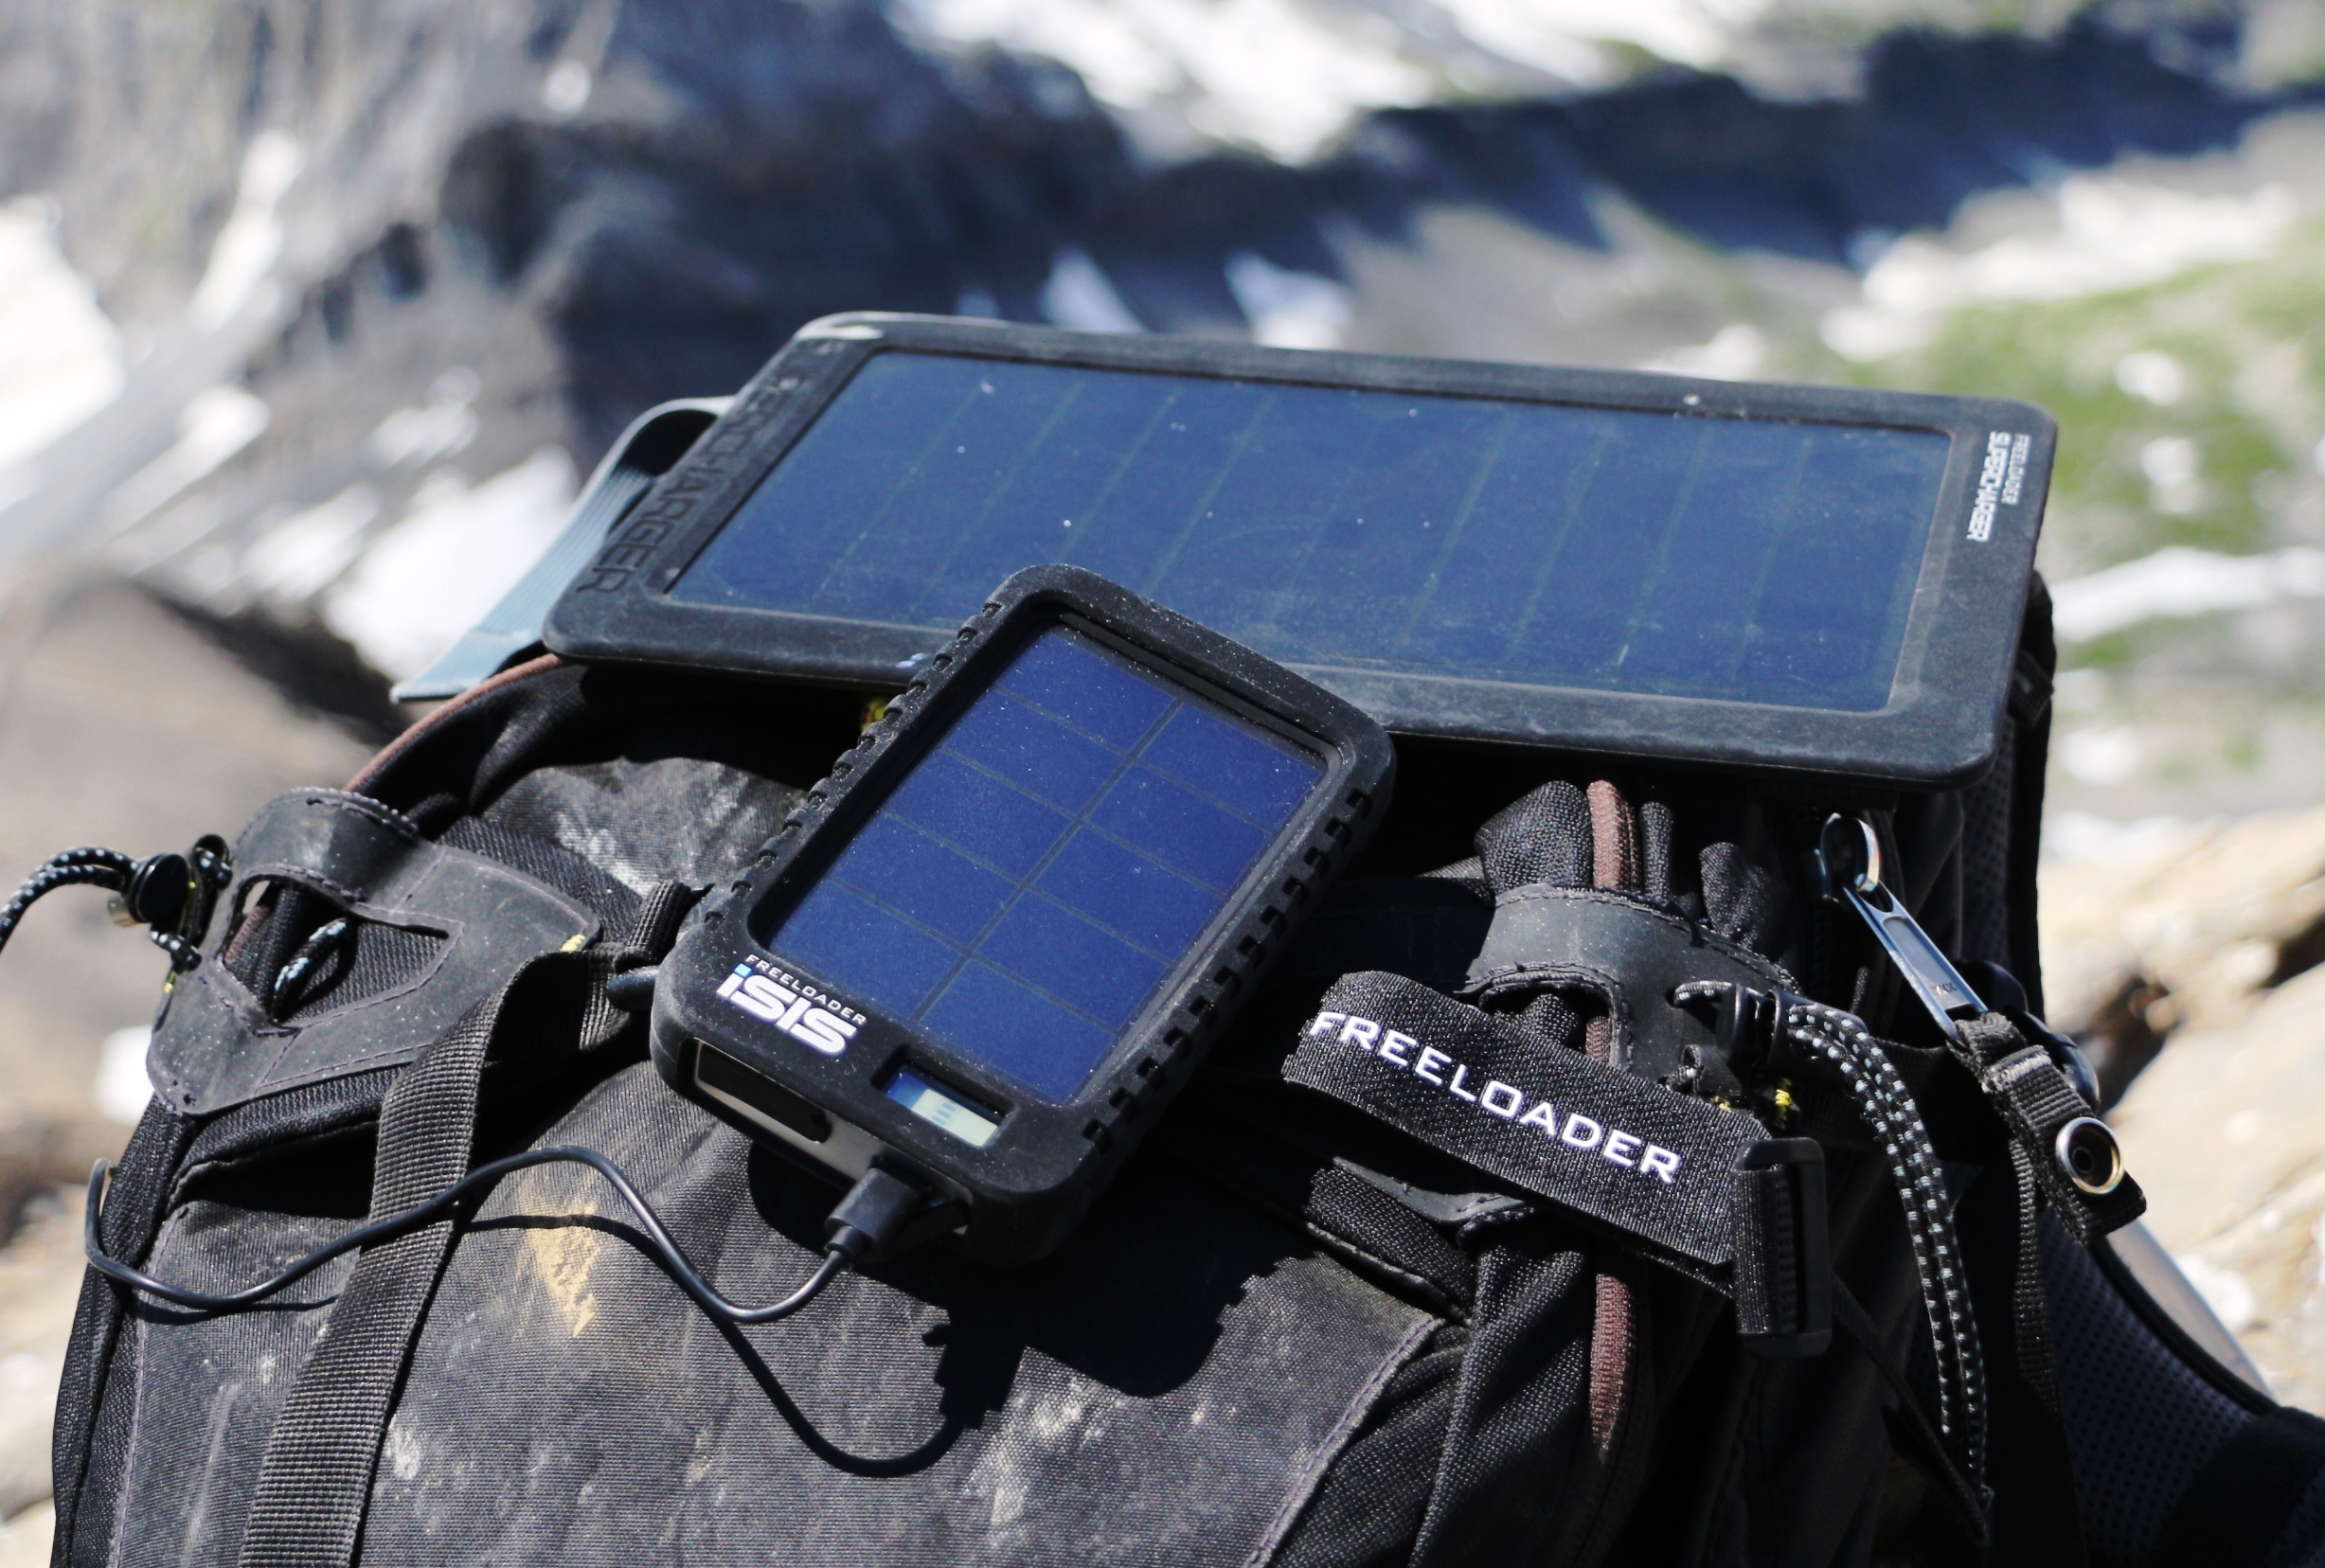 chargeur solaire globetrotter tdm